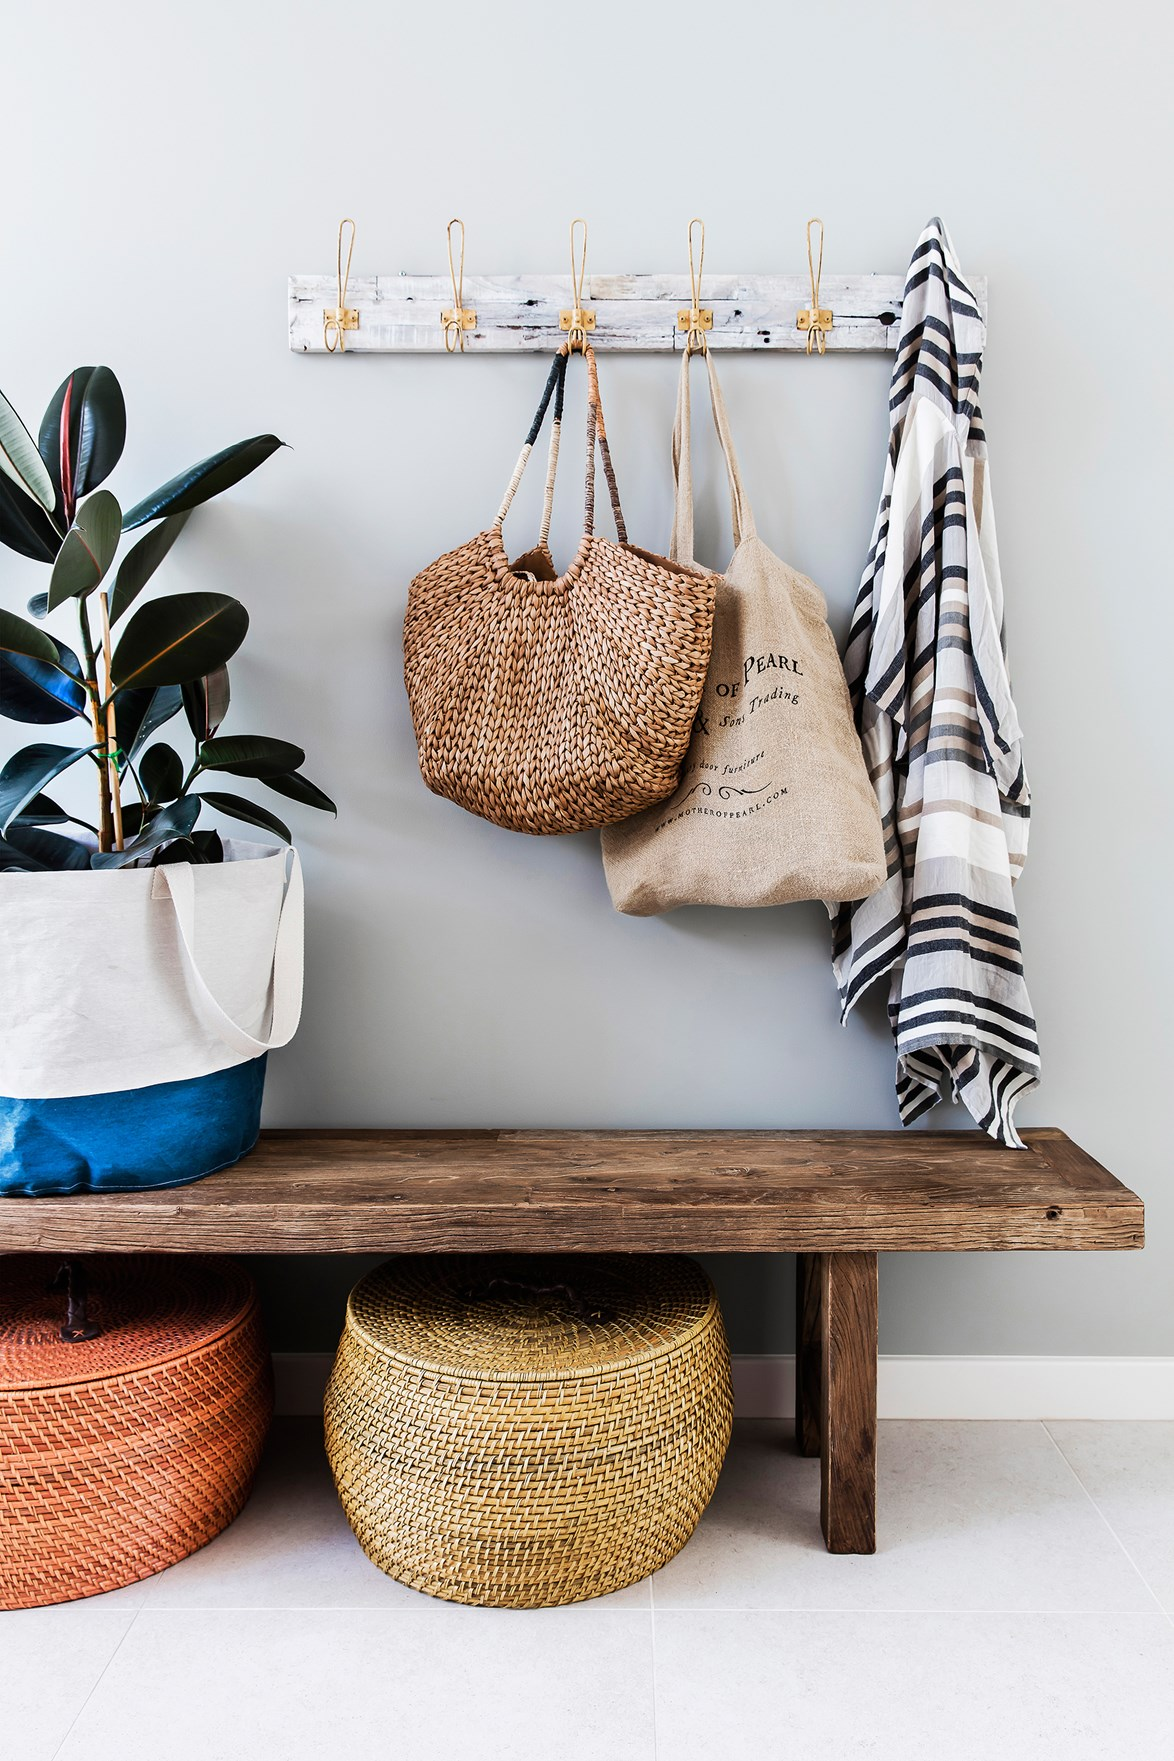 First impressions count! Keep the entry to your home clean and clutter-free with stylish baskets and hooks. *Photo:* Maree Homer